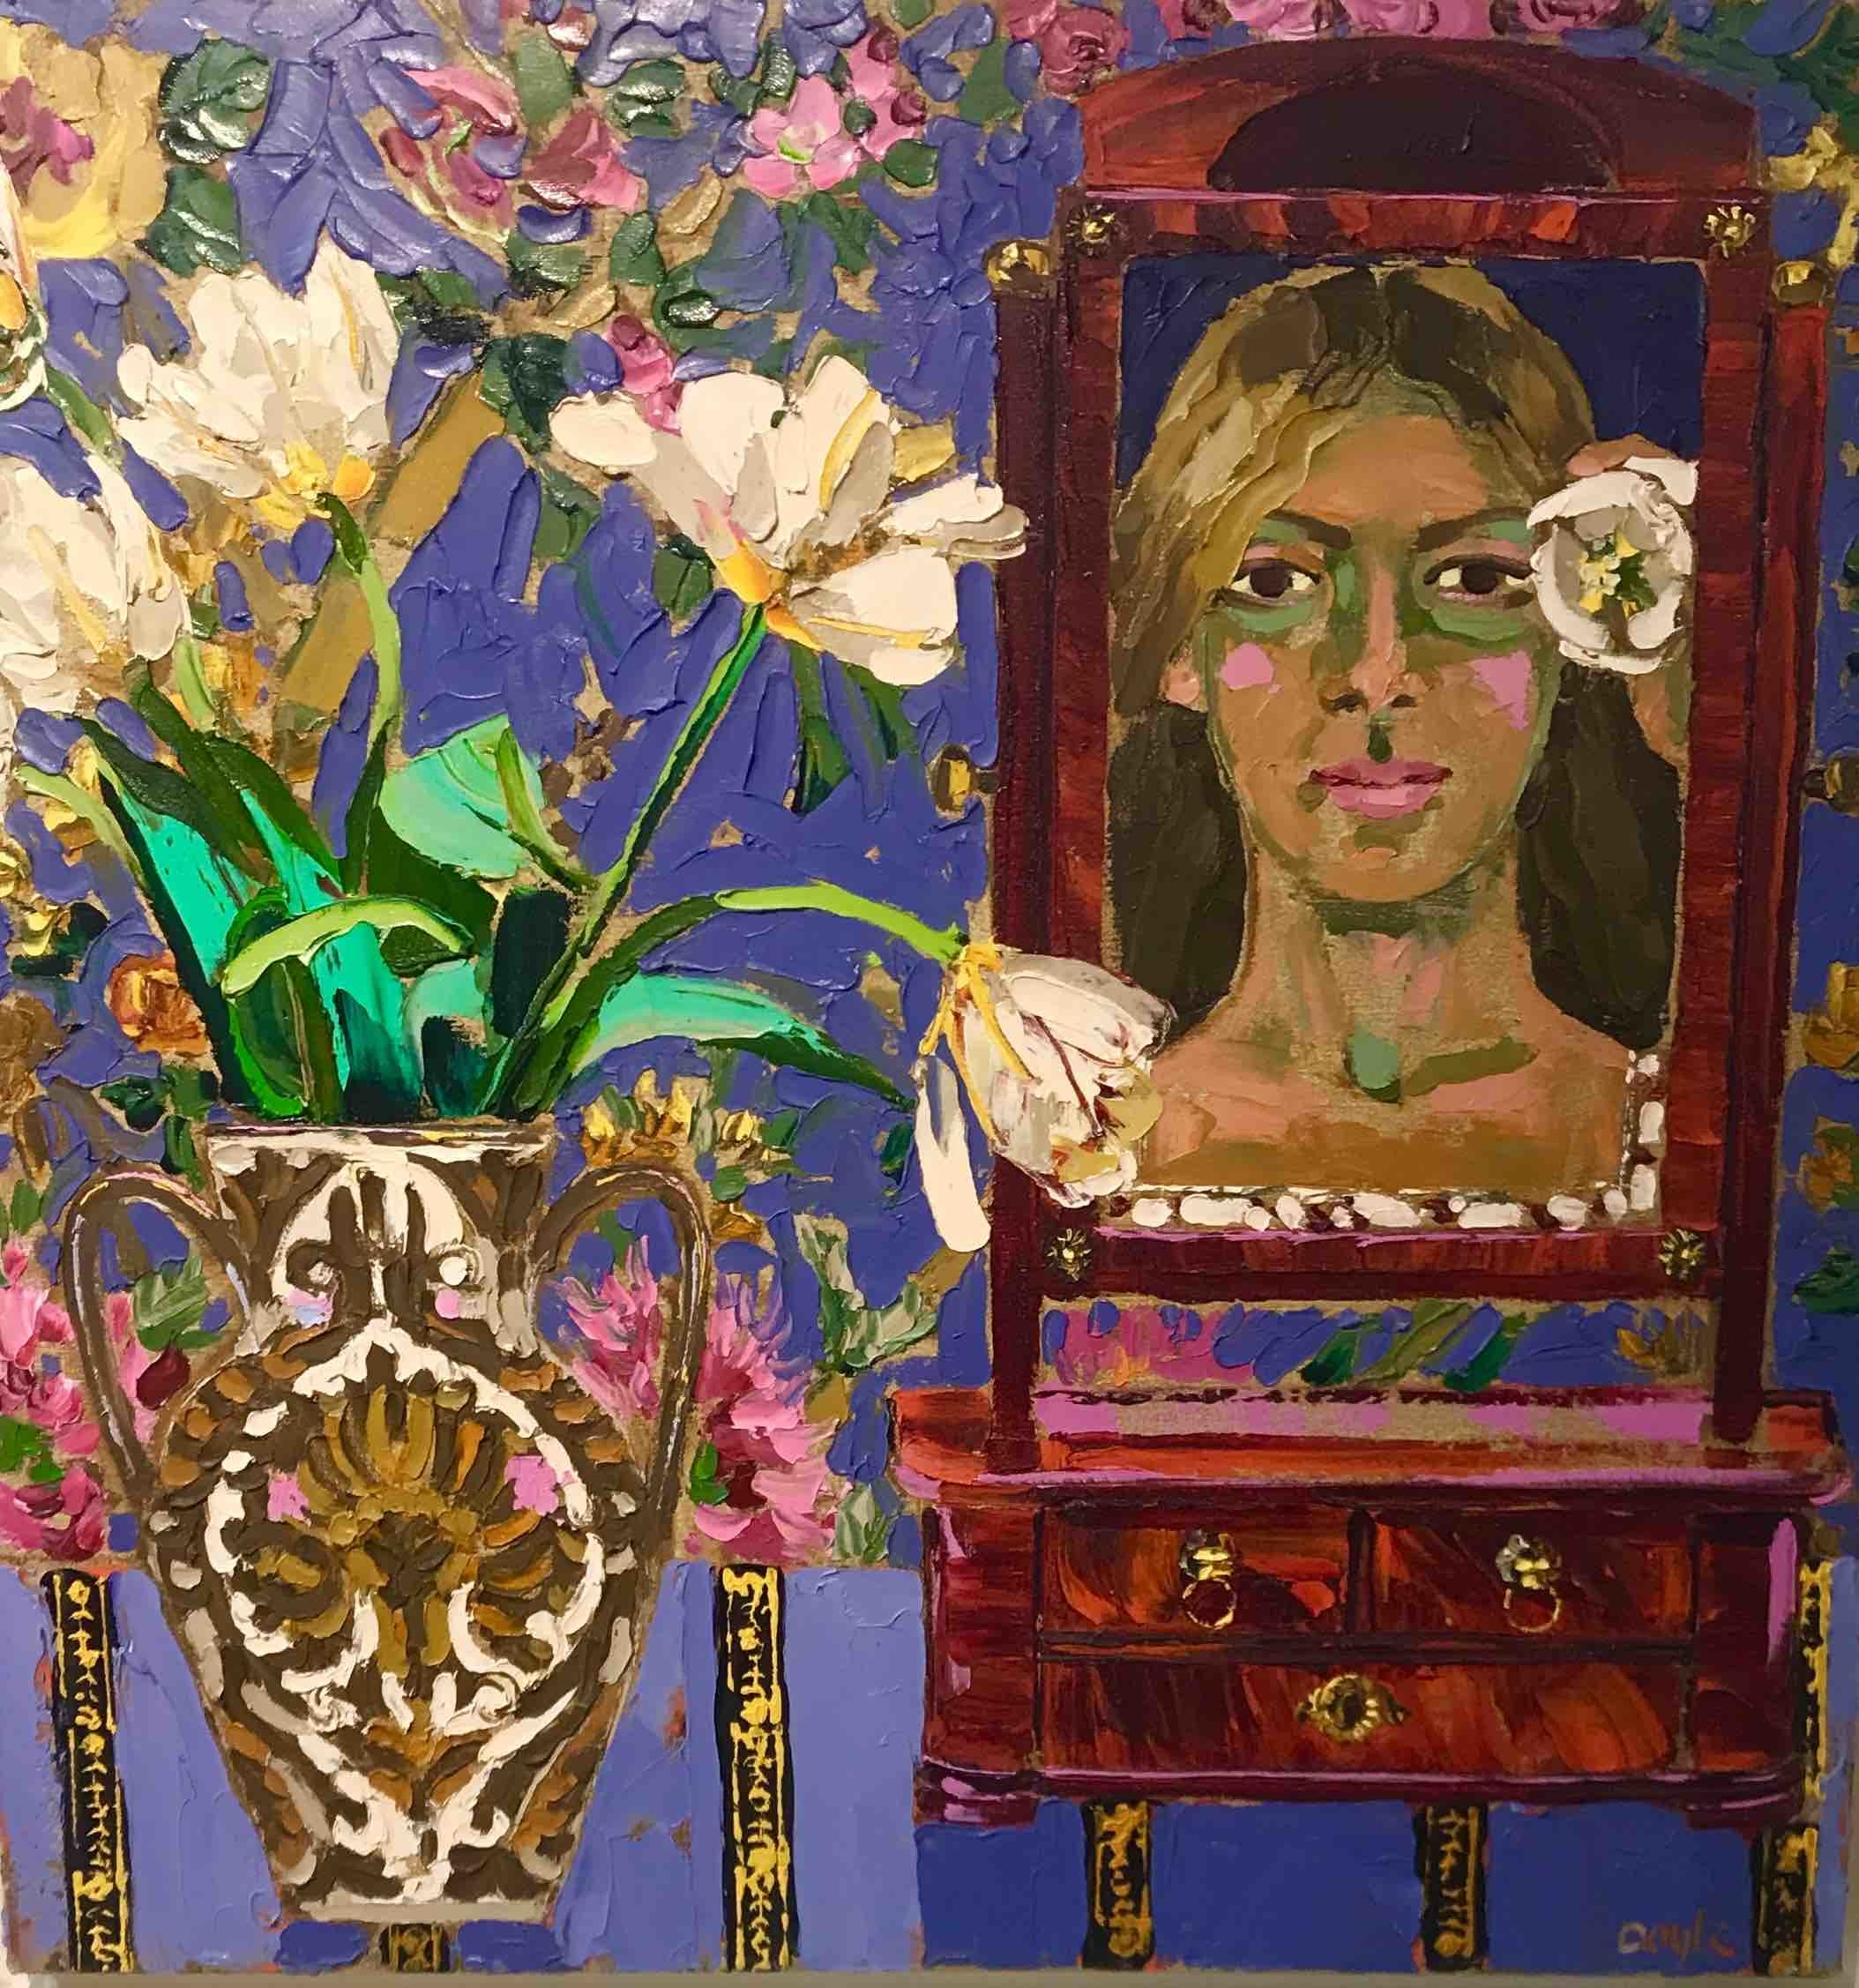 "<span class=""link fancybox-details-link""><a href=""/artists/202-lucy-doyle/works/2958-lucy-doyle-dressing-table-mirror/"">View Detail Page</a></span><div class=""artist""><strong>Lucy Doyle</strong></div> <div class=""title""><em>Dressing Table Mirror</em></div> <div class=""medium"">Oil on Canvas</div> <div class=""dimensions"">71 x 71 cm </div><div class=""copyright_line"">Copyright The Artist</div>"